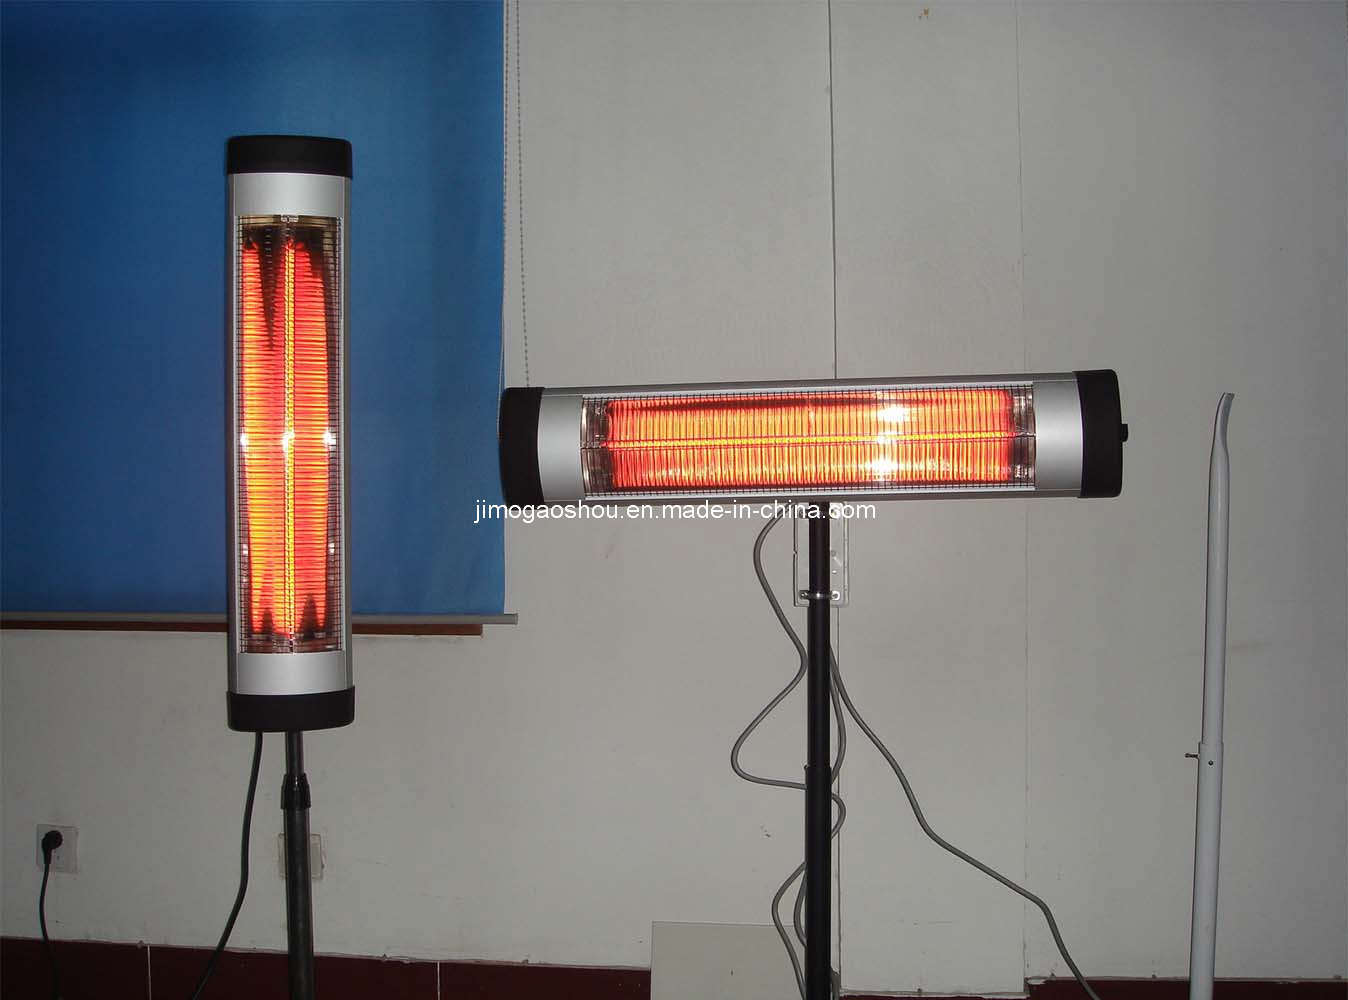 Room Carbon Fiber Warm Heater (JL288)